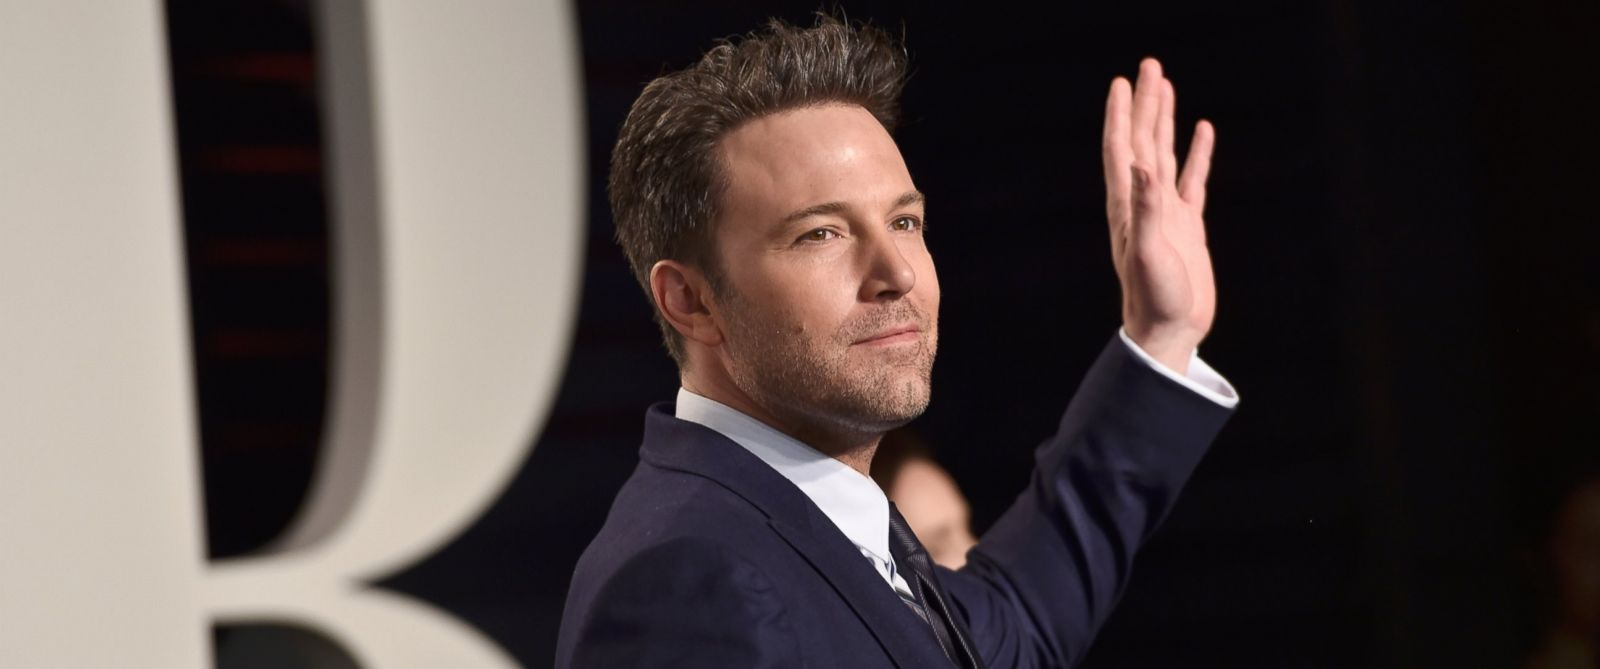 PHOTO: Ben Affleck attends the 2016 Vanity Fair Oscar Party hosted By Graydon Carter at the Wallis Annenberg Center for the Performing Arts on Feb. 28, 2016 in Beverly Hills, Calif.